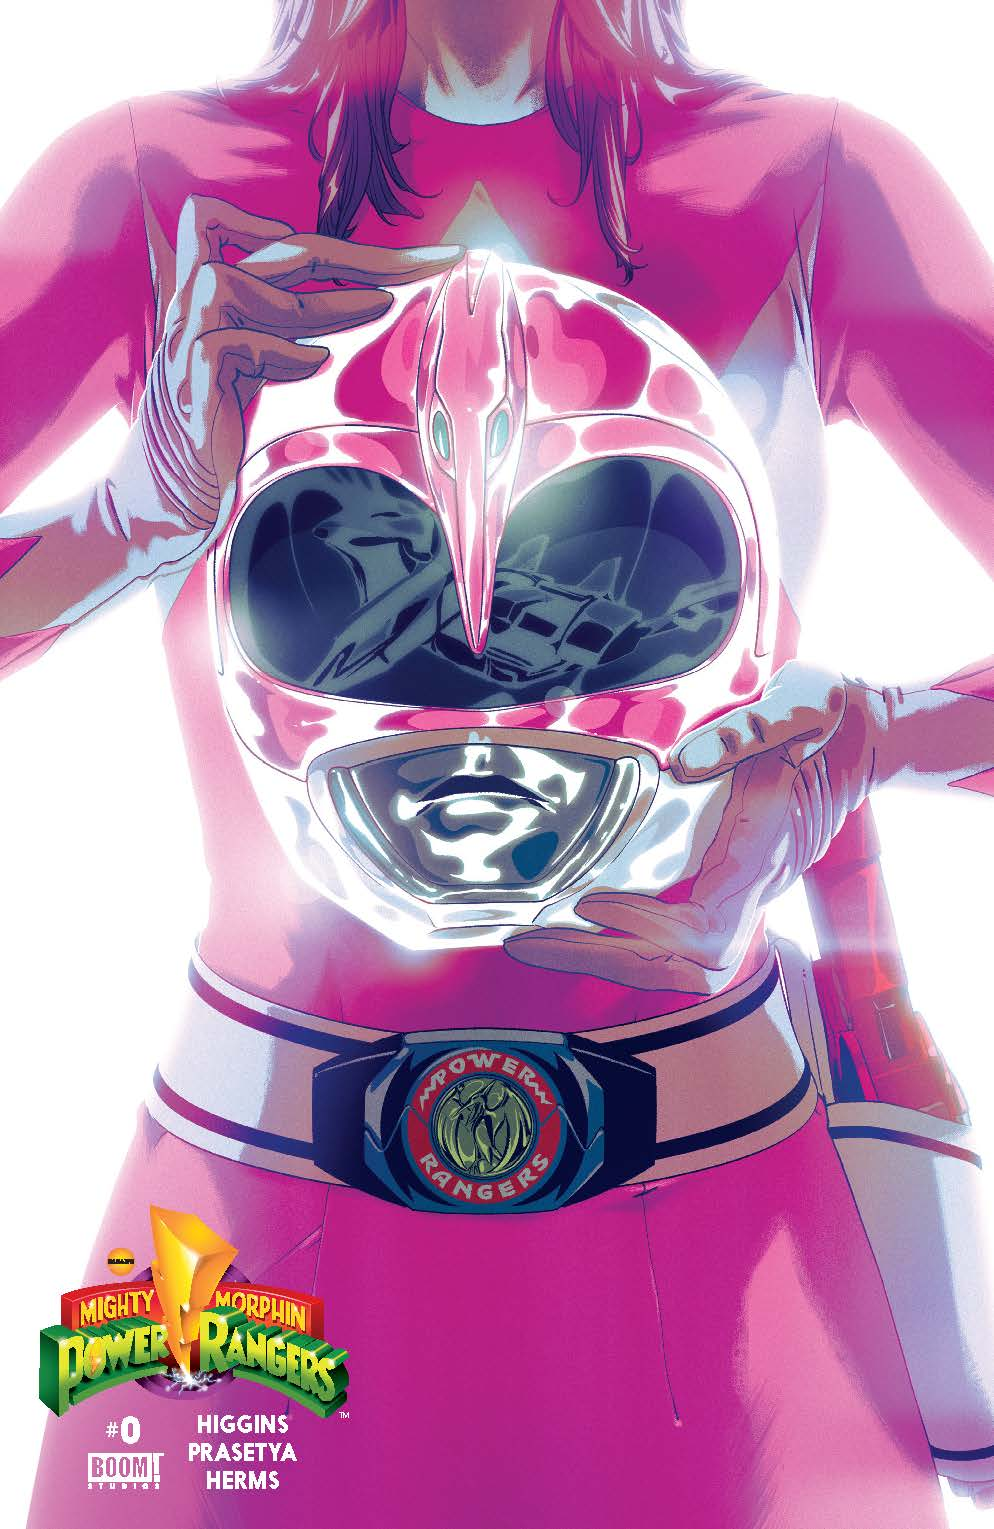 MIghty Morphin Power Rangers #0 Pink Cover